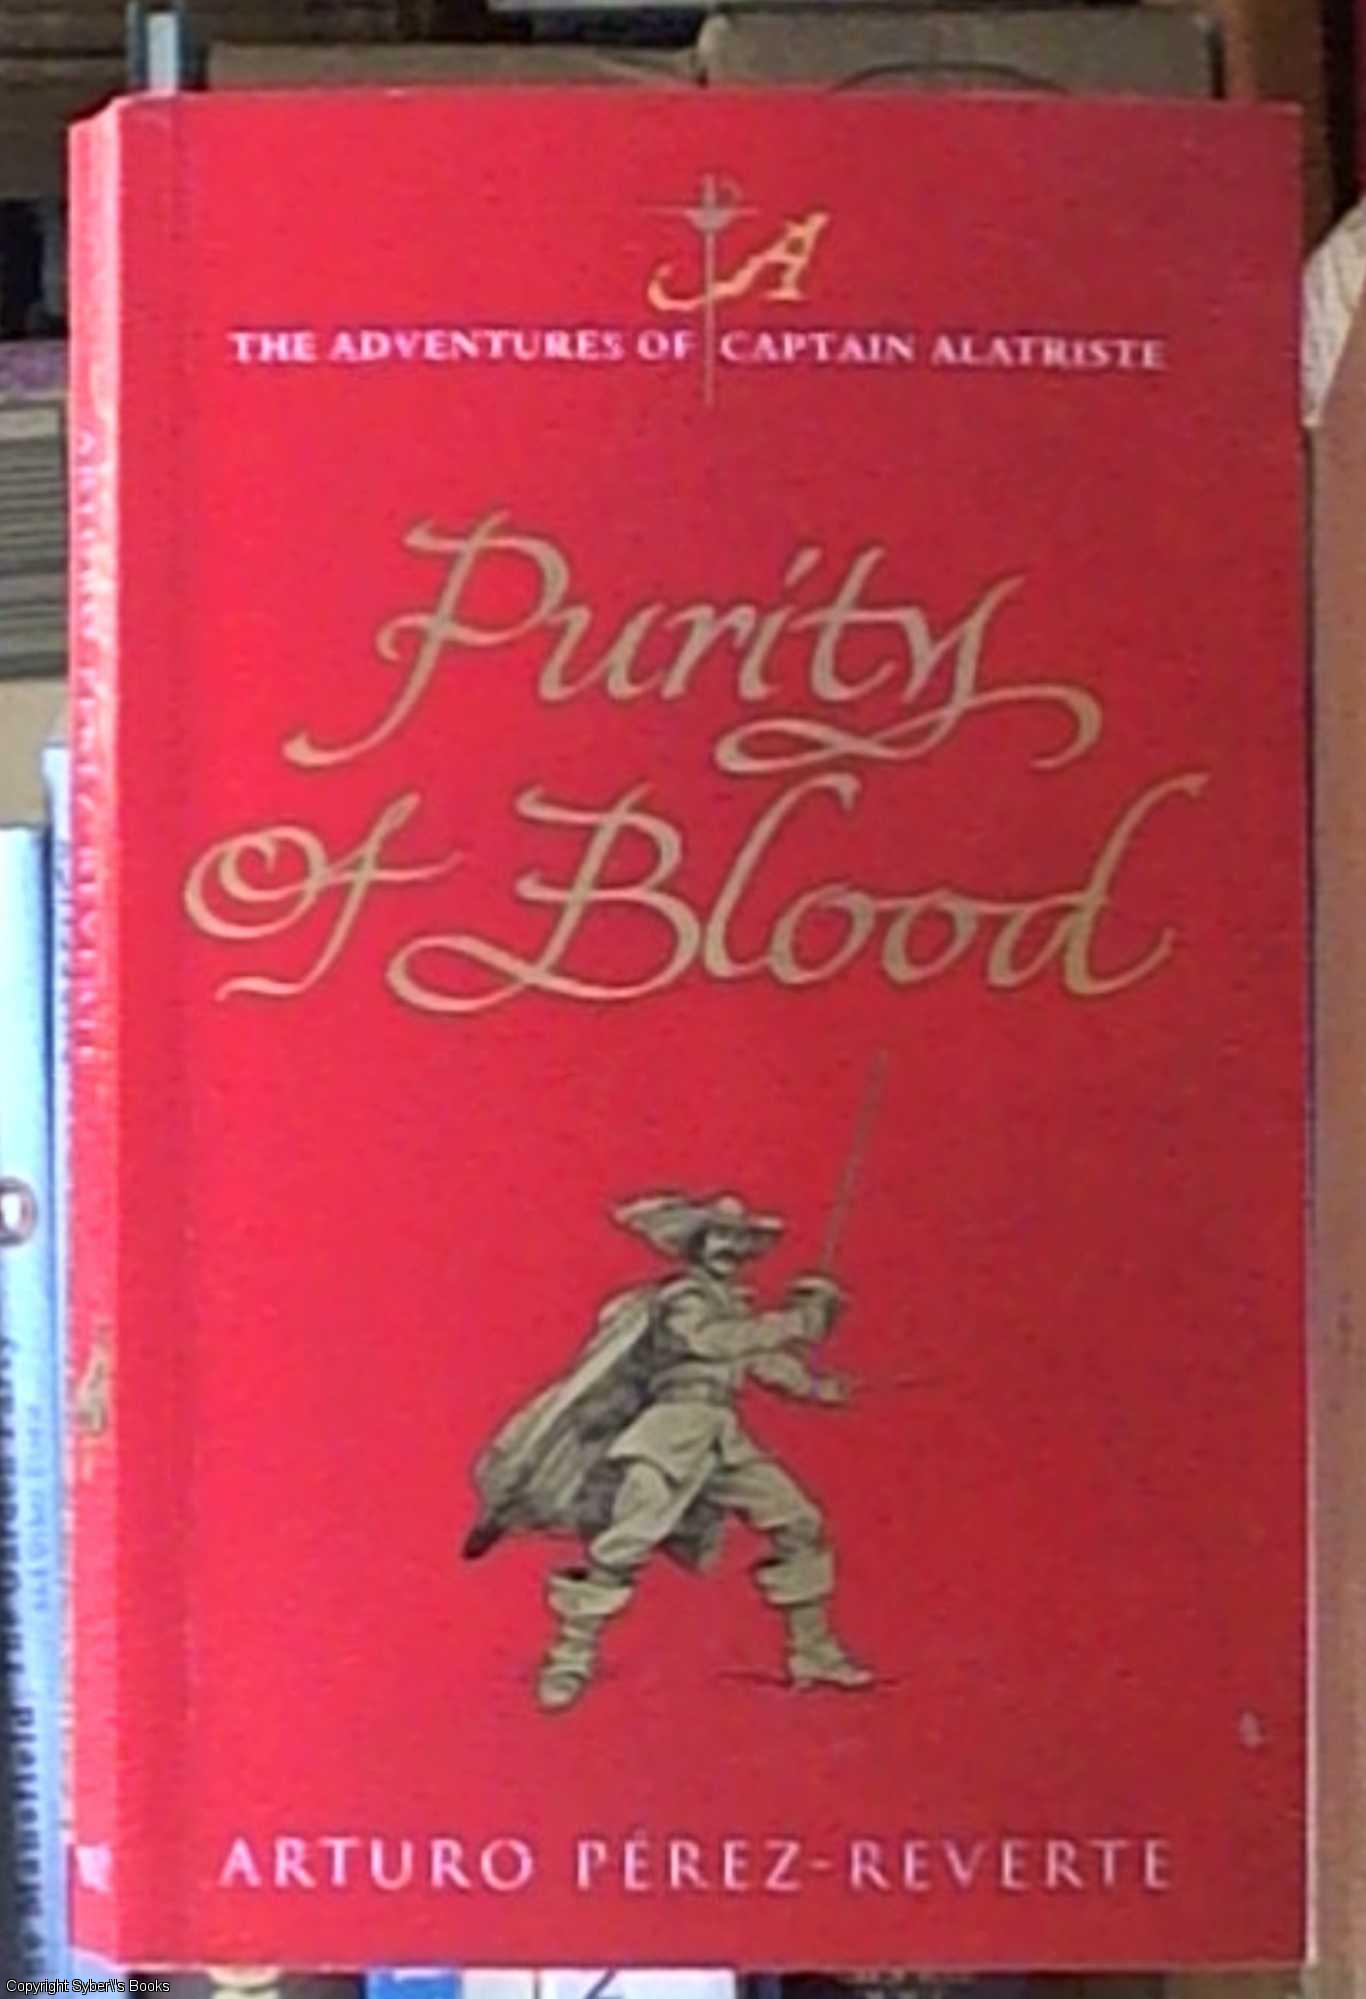 The Purity of Blood